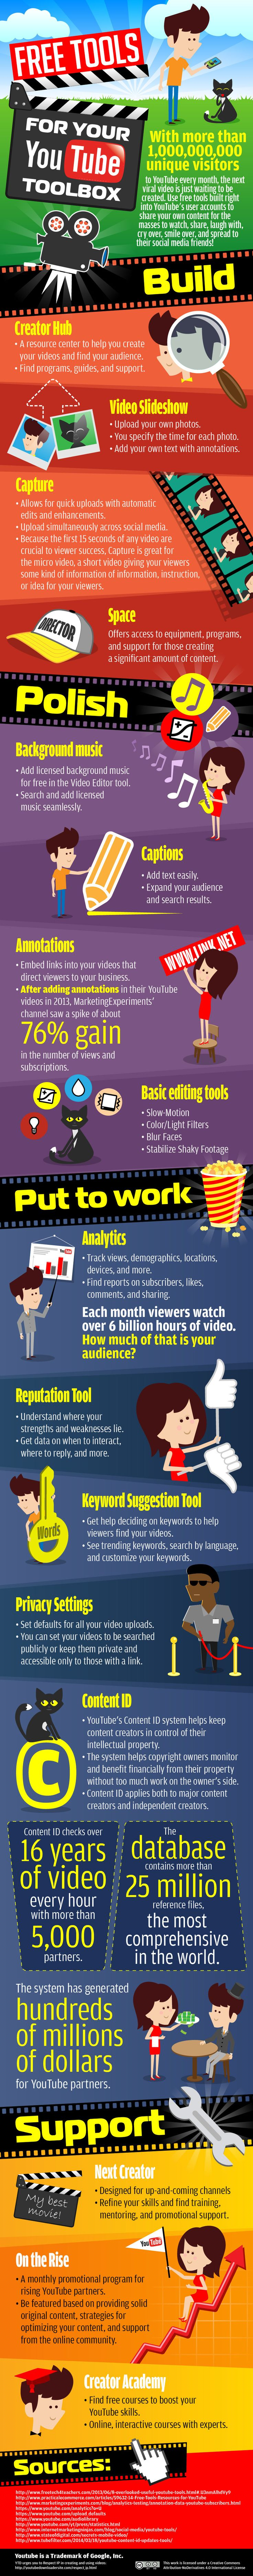 Free Tools For Your #YouTube Toolbox - #socialmedia